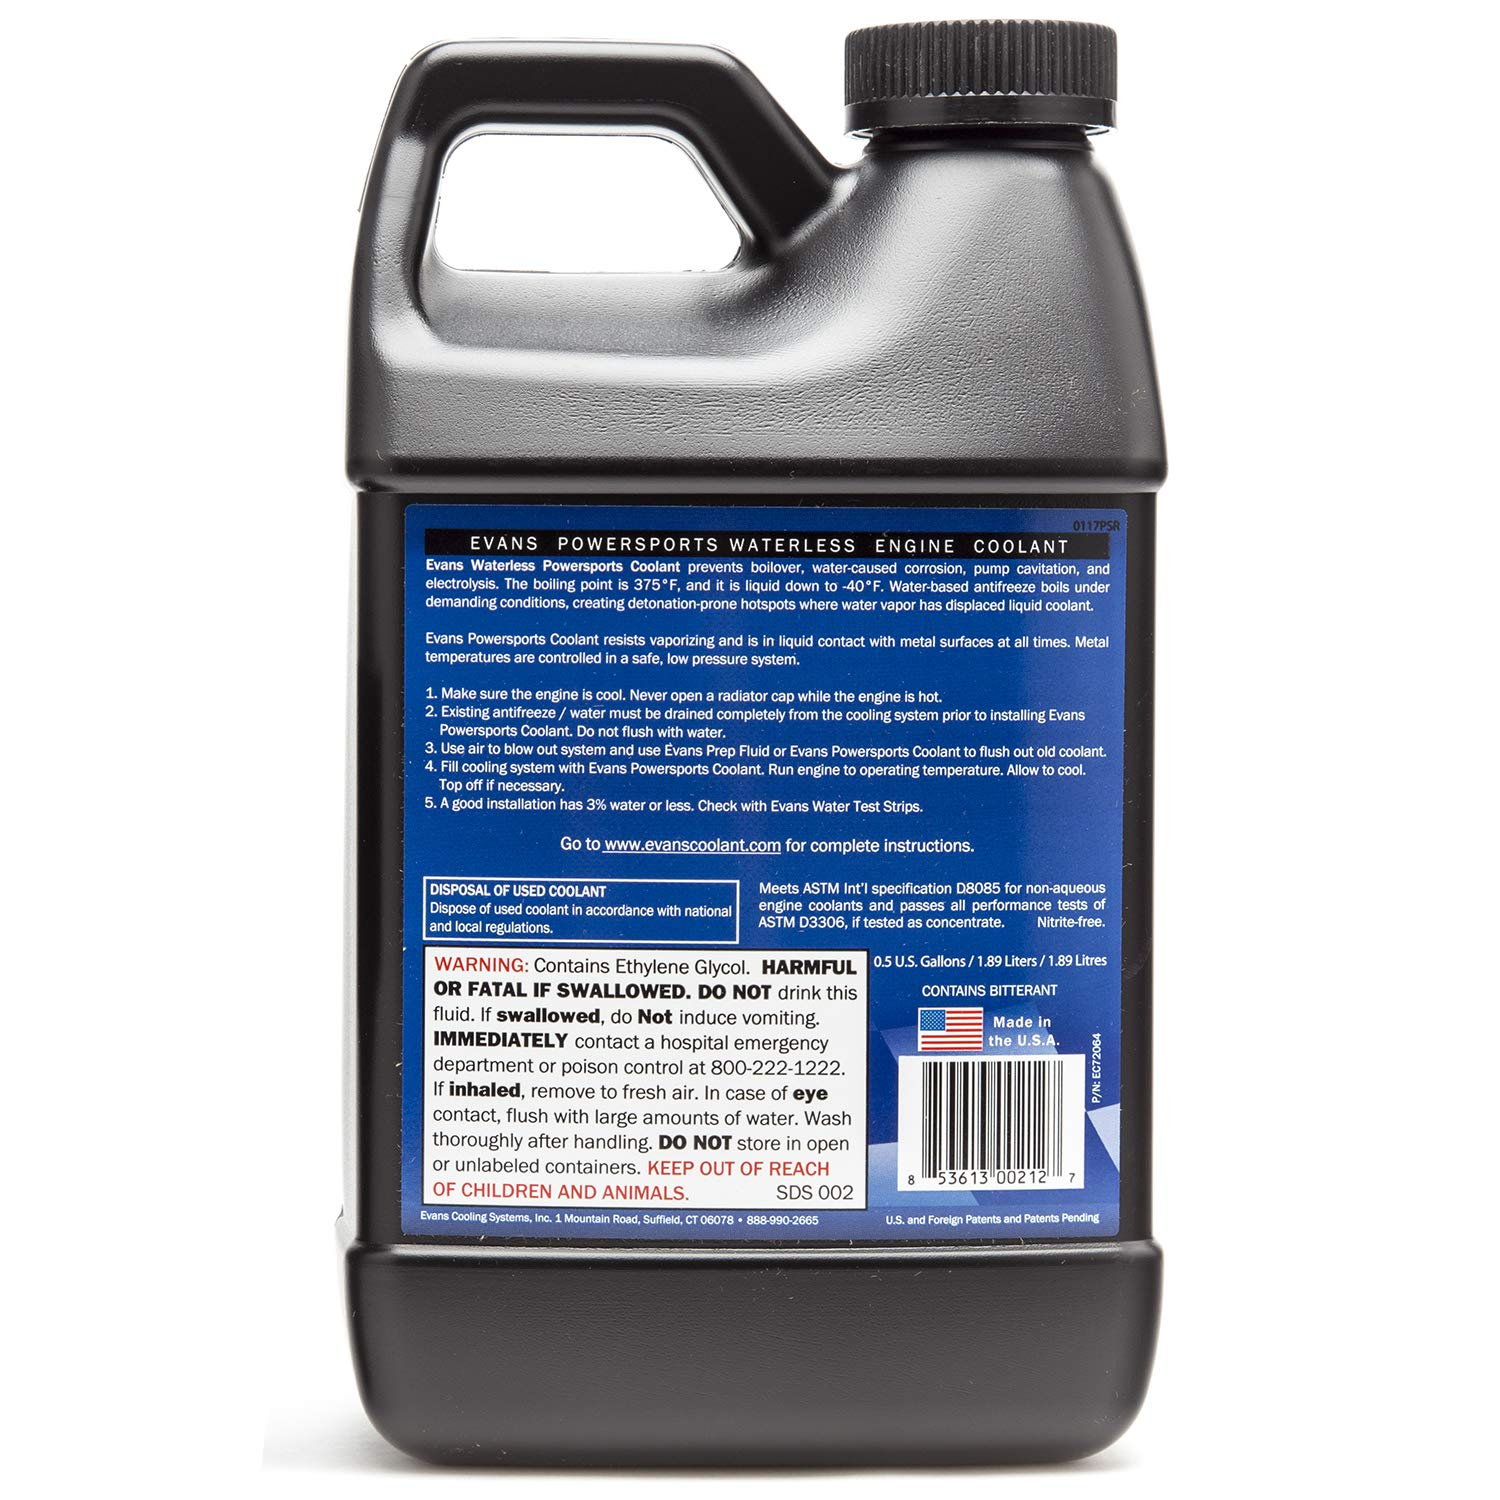 Evans Coolant Ec72064 Powersports Waterless Engine Damage 1 2 Gallon Automotive